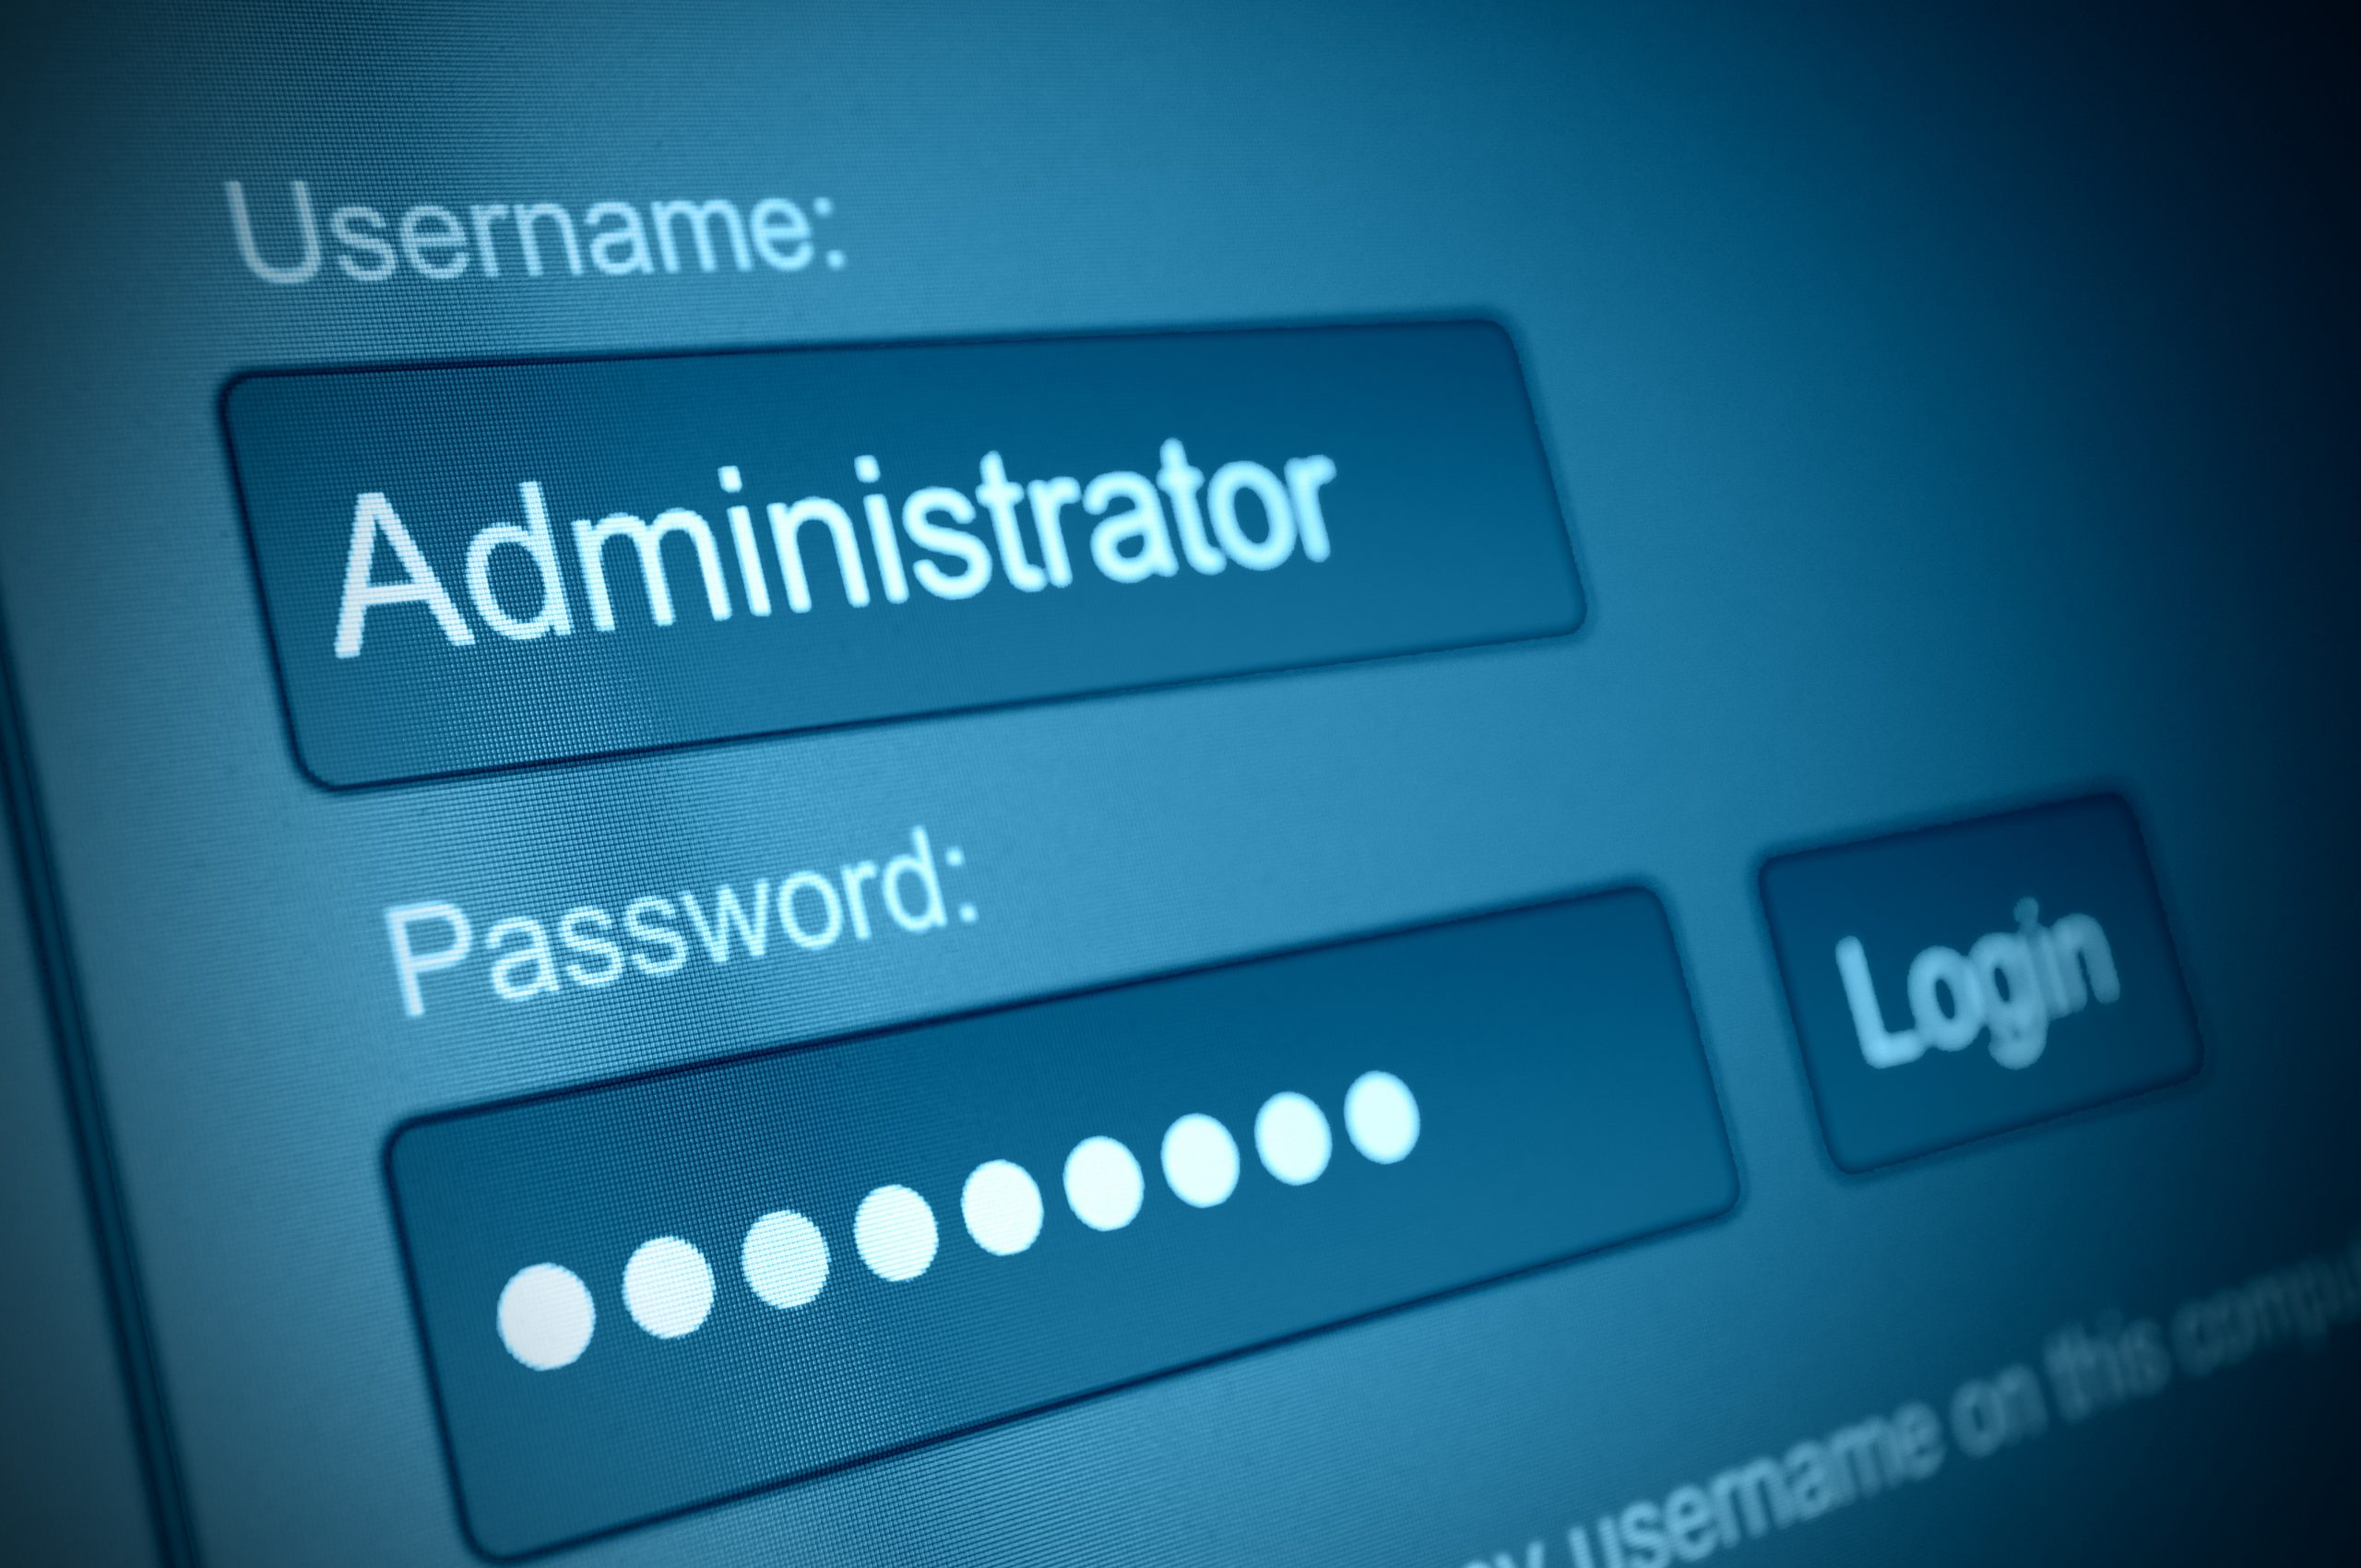 Your IT Administrator has limited access